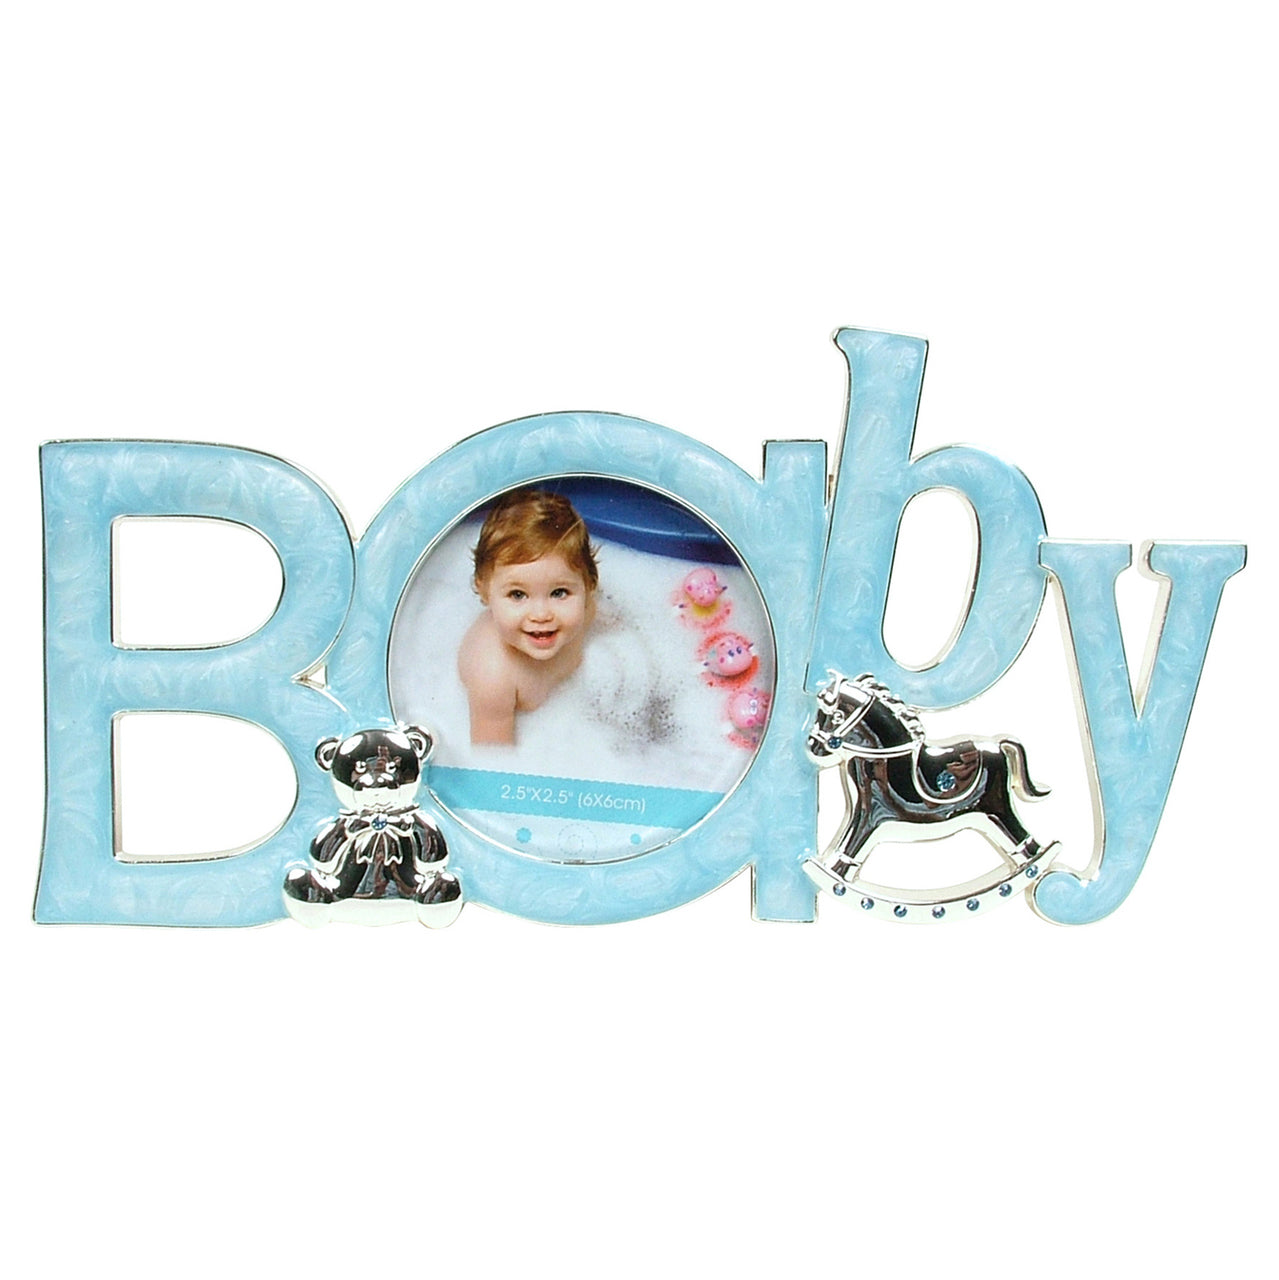 Dakota BABY Frame - Blue